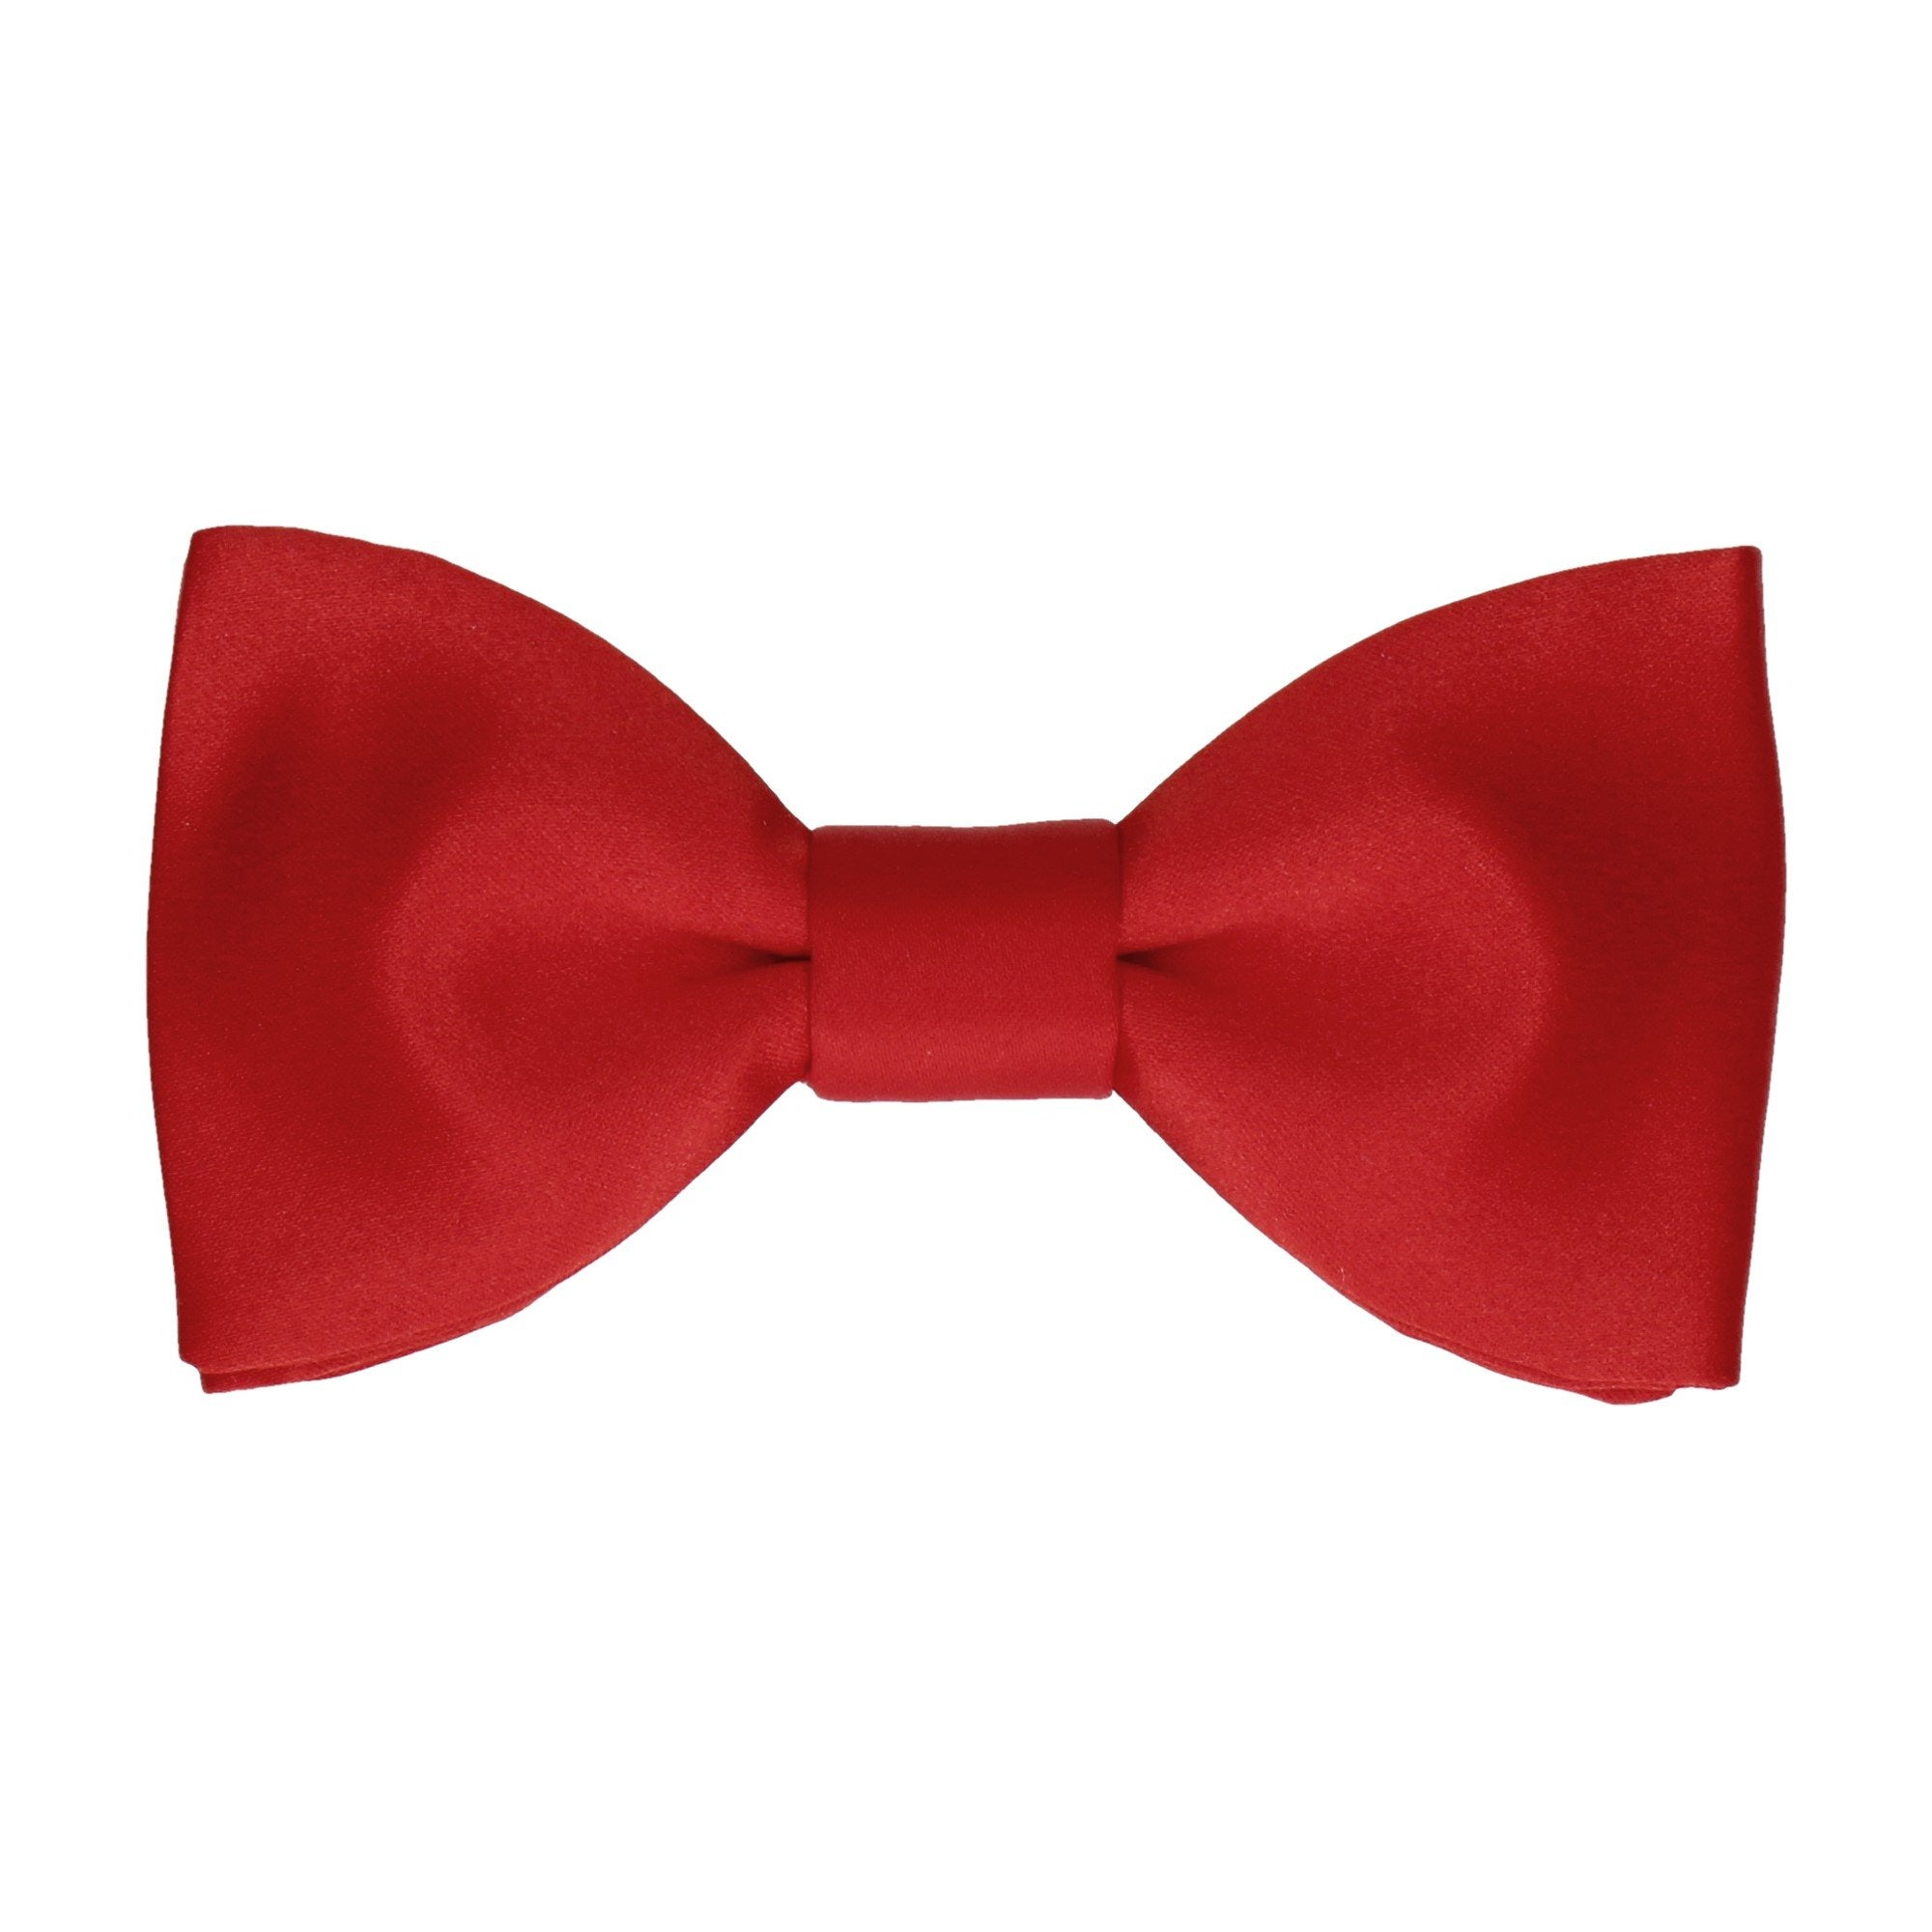 Satin in Vermillion Red Bow Tie